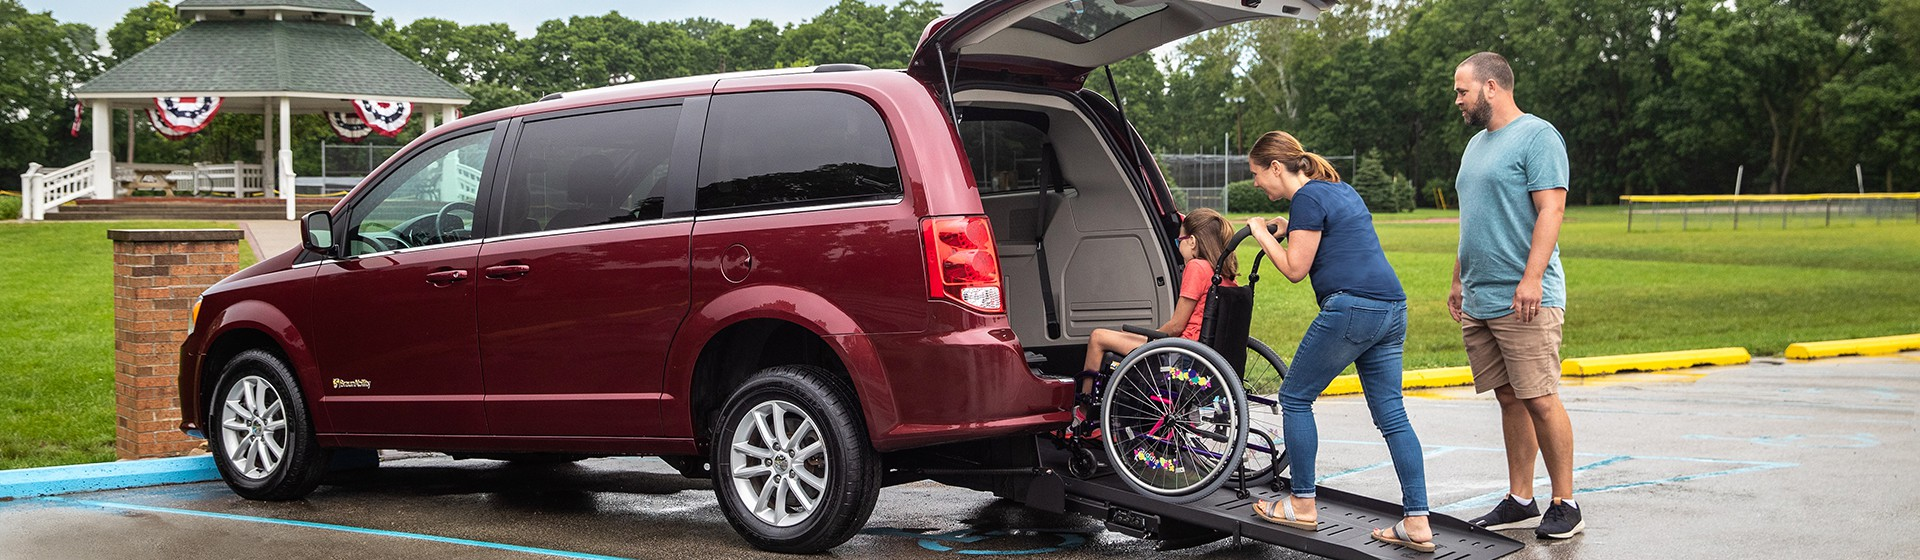 Wheelchair Van Rental Oklahoma